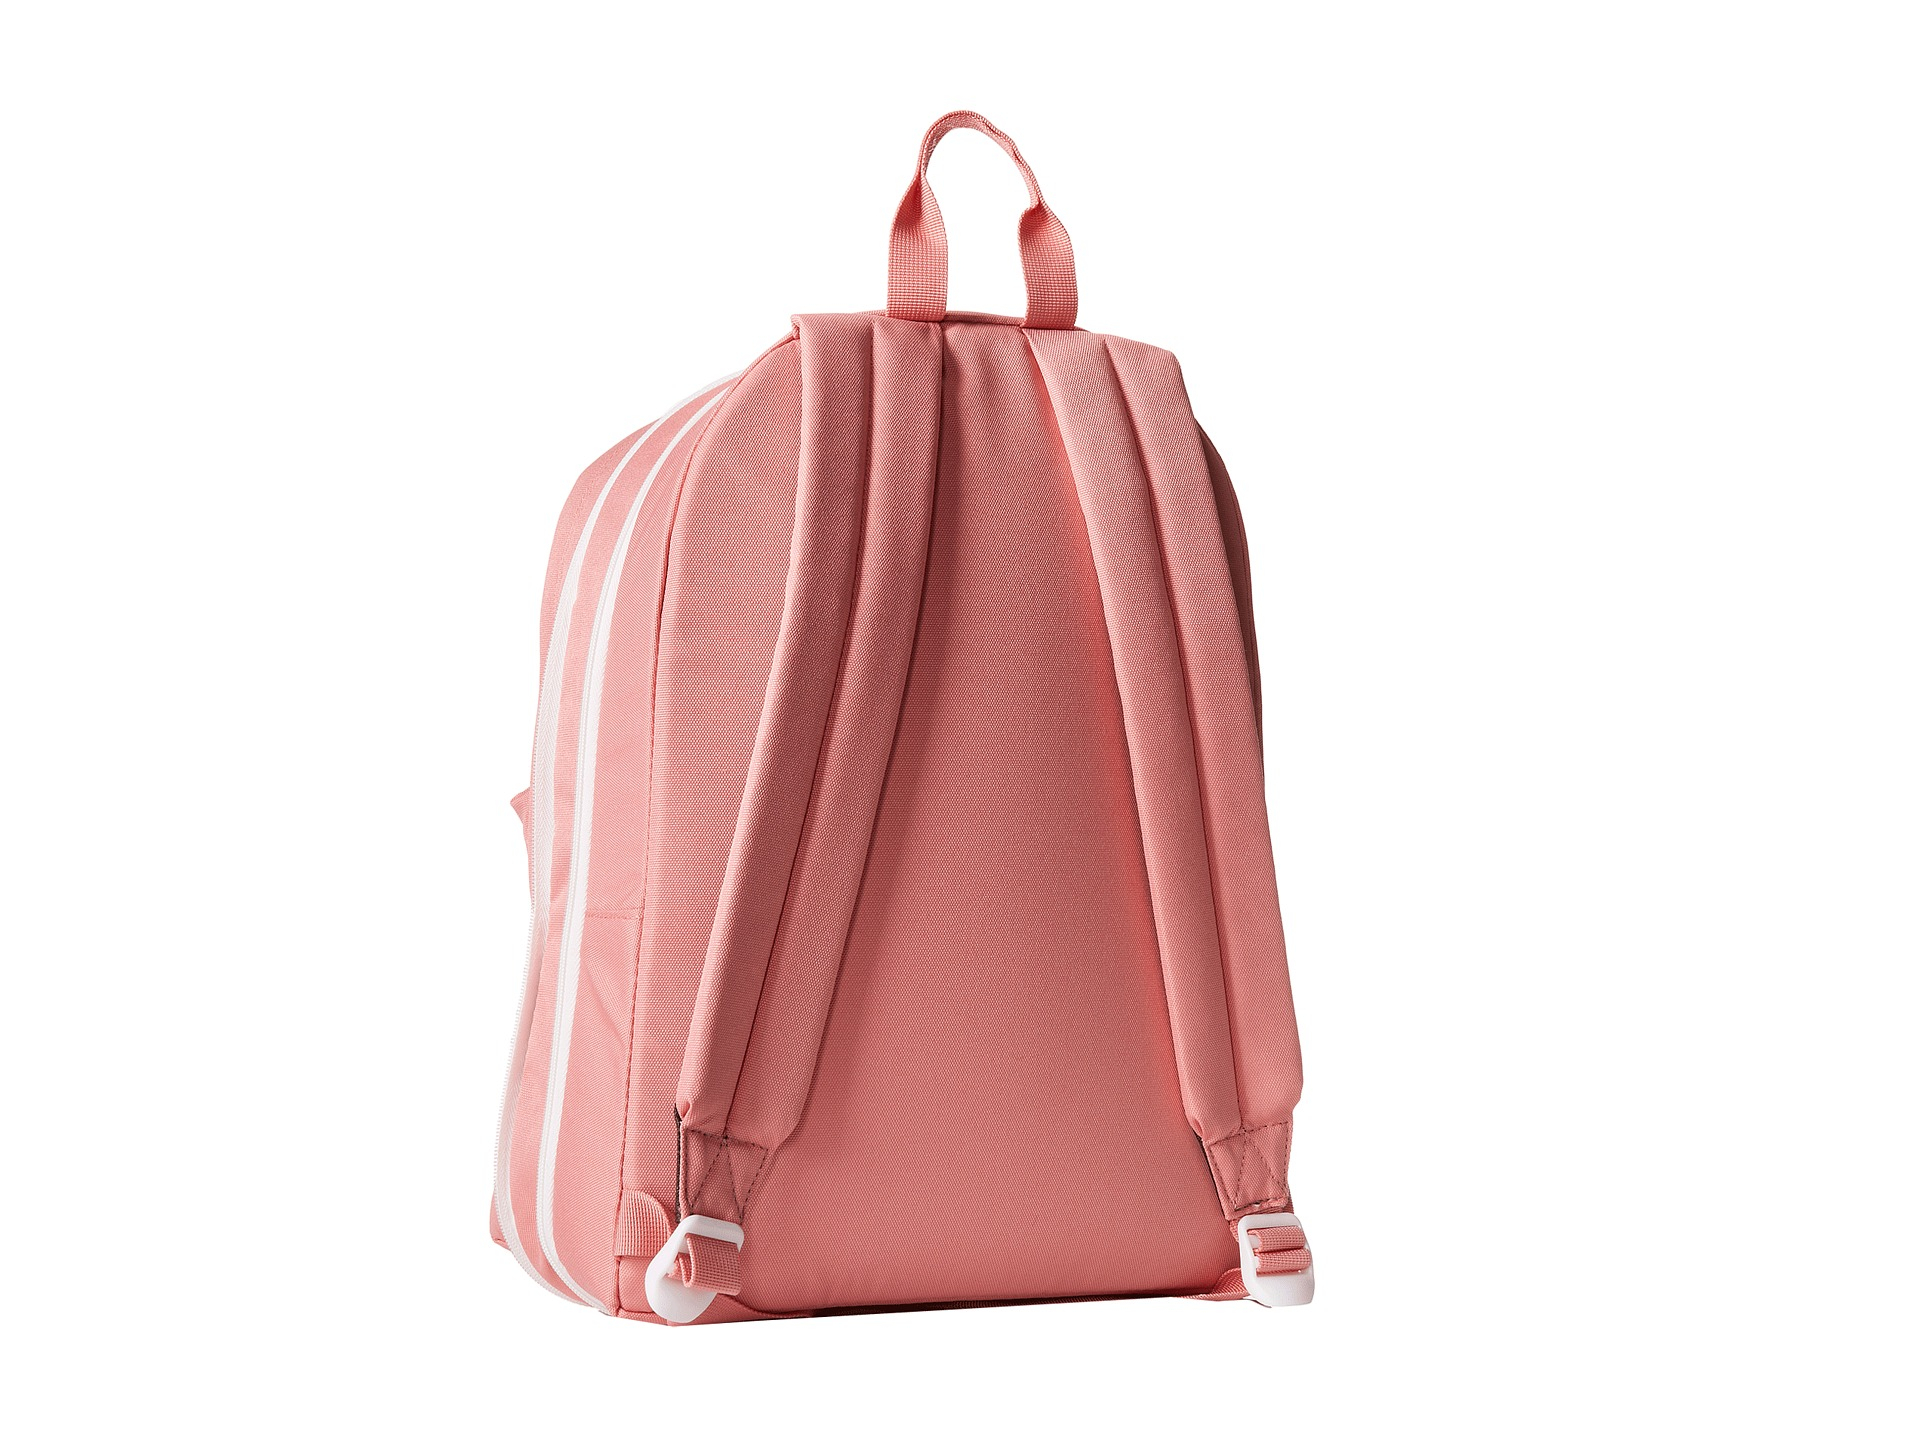 e9403049ddd Lacoste Backcroc Pastels Backpack in Pink - Lyst